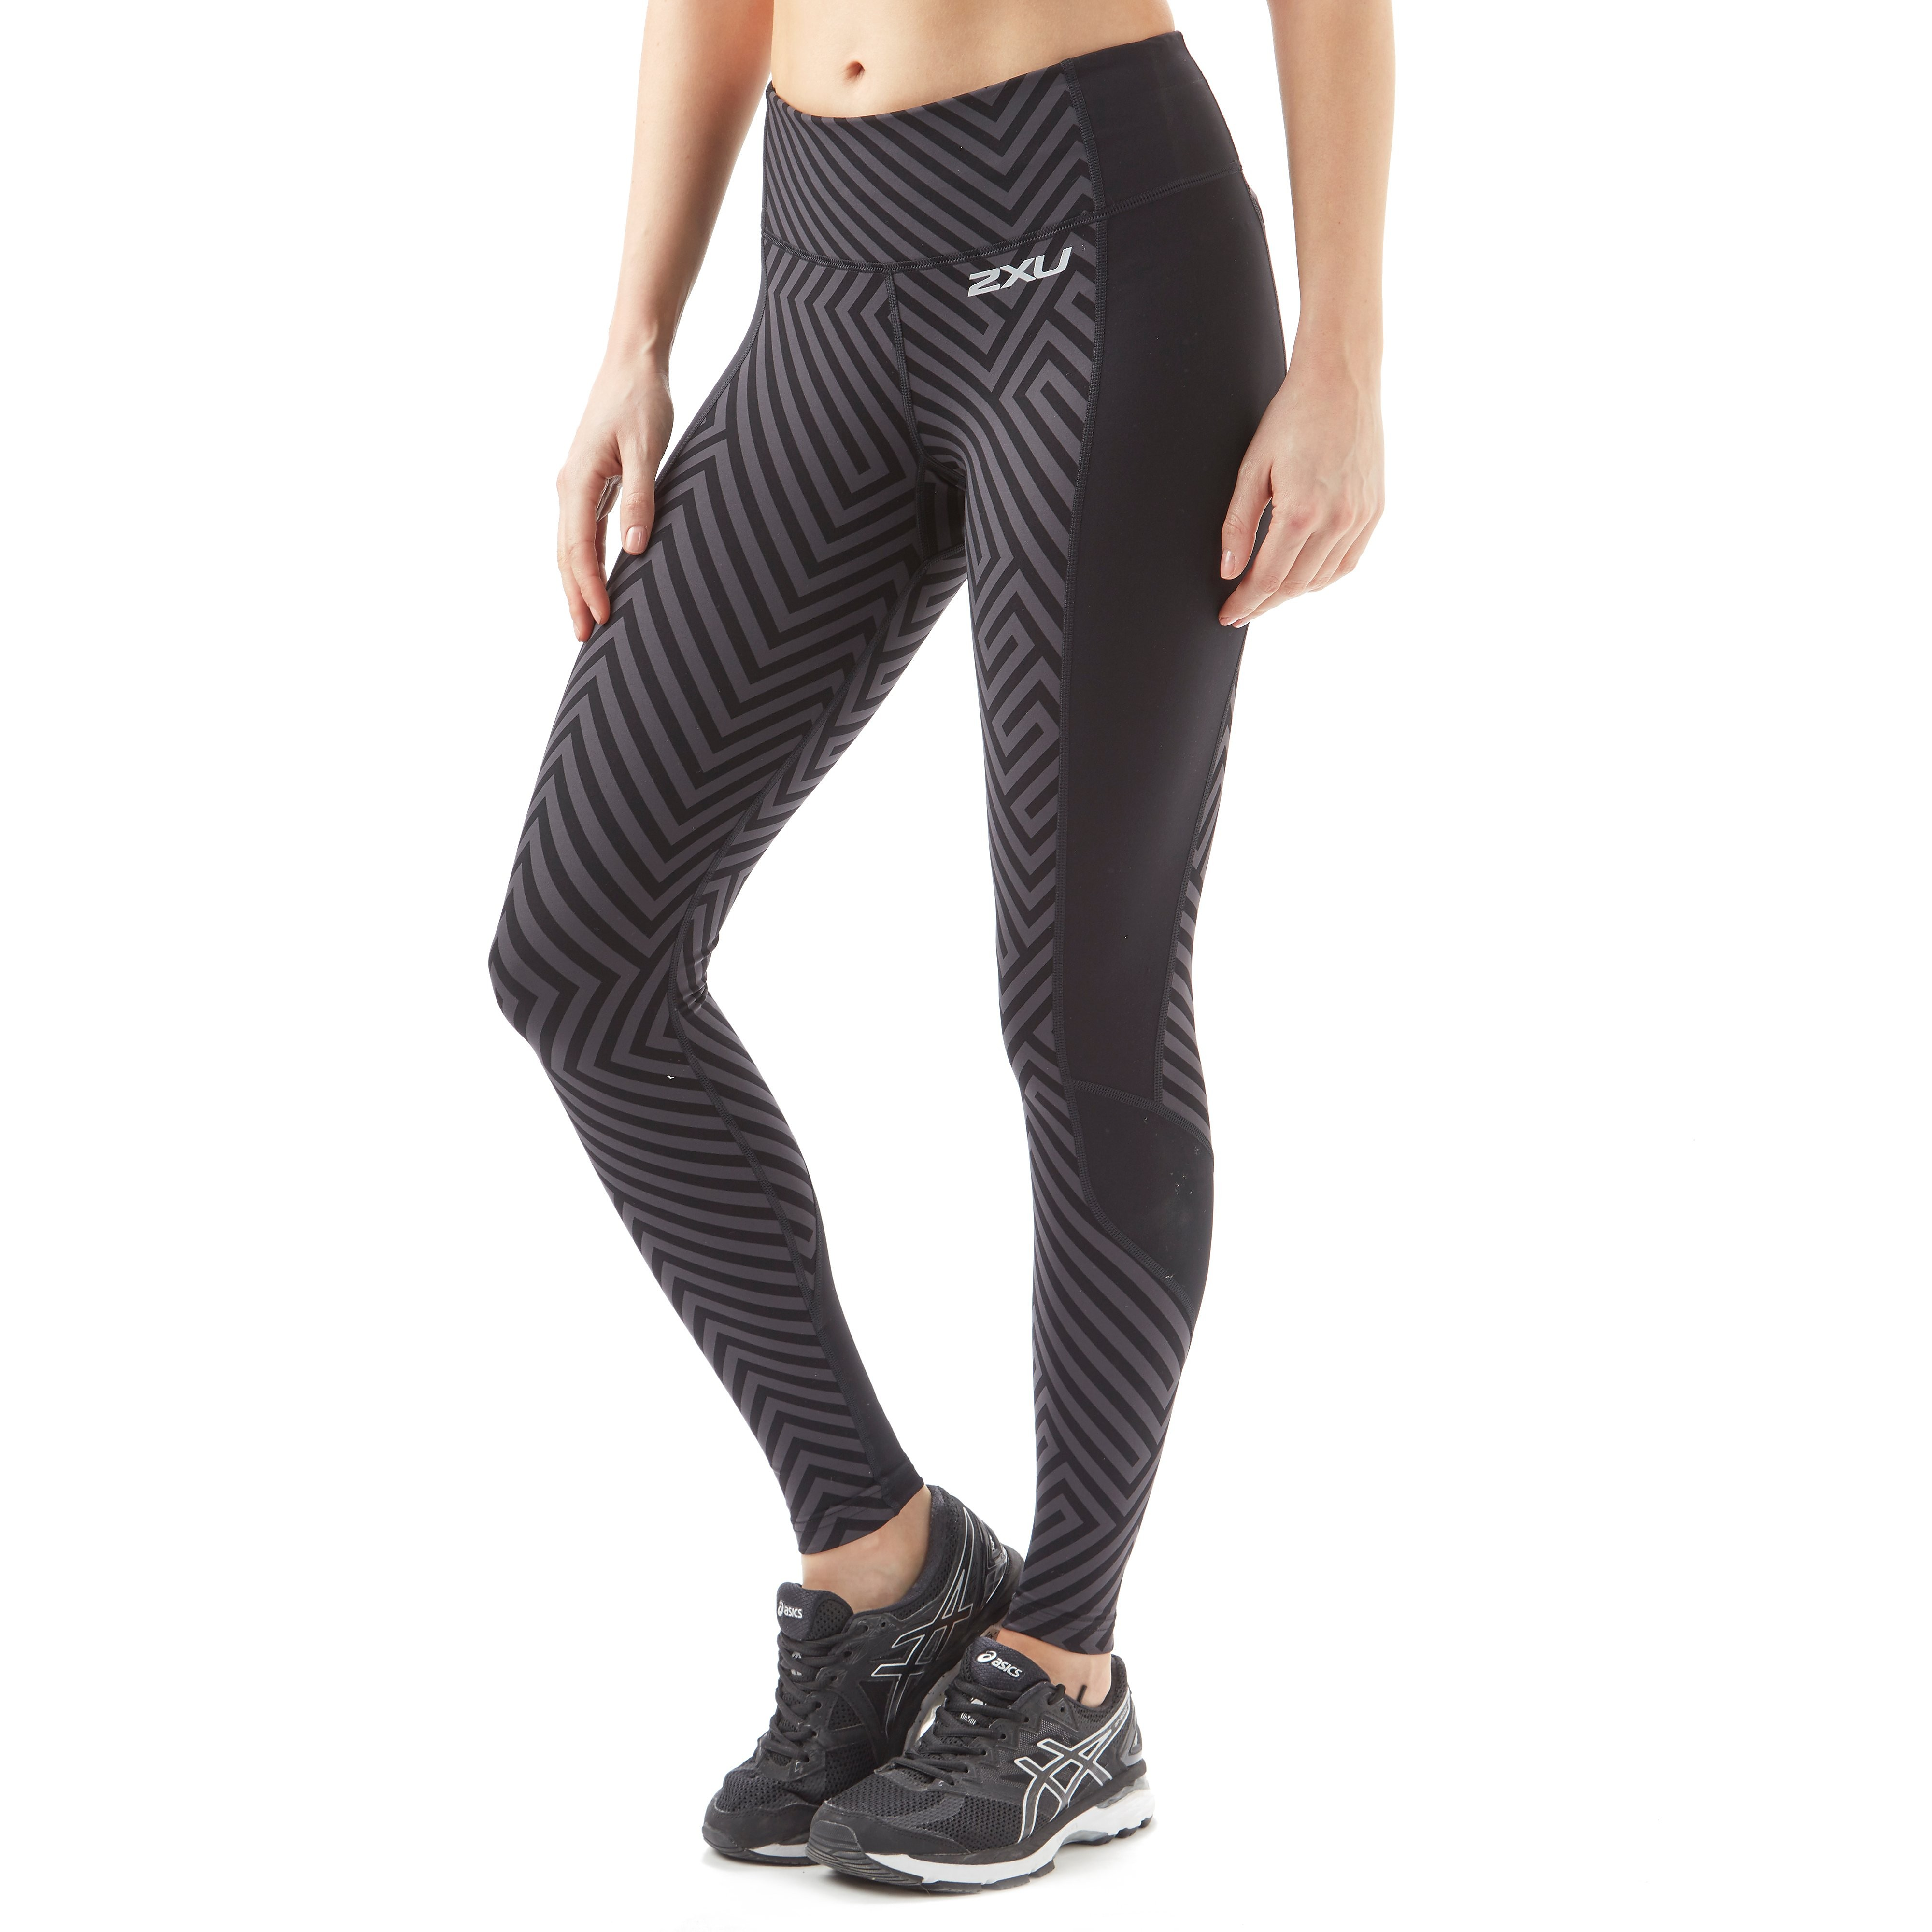 2XU Pattern Fitness Compression Women's Running Tights